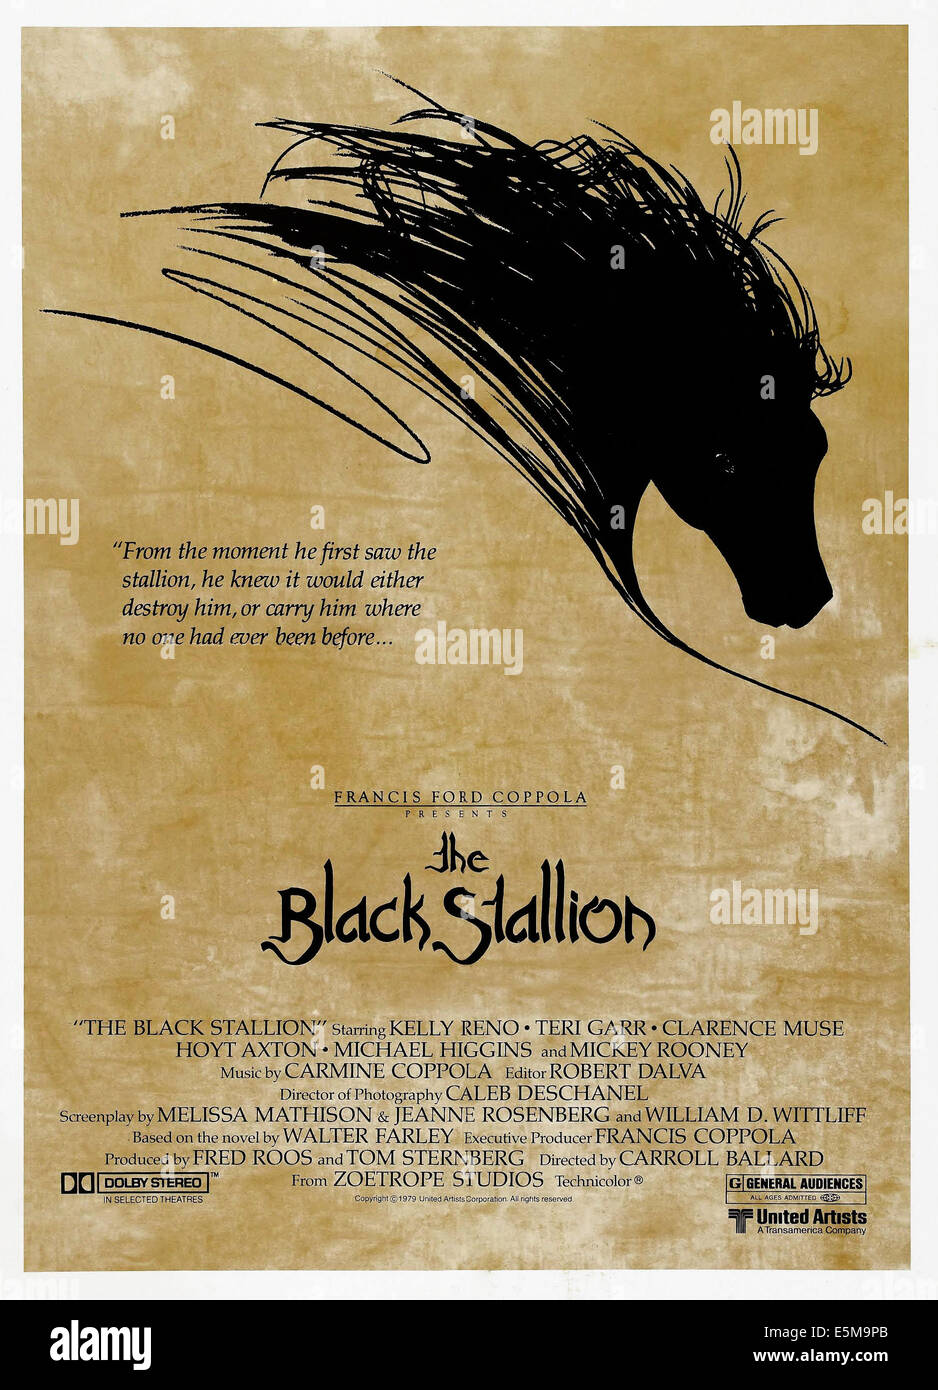 THE BLACK STALLION, US poster art, 1979. ©United Artists/courtesy Everett Collection - Stock Image